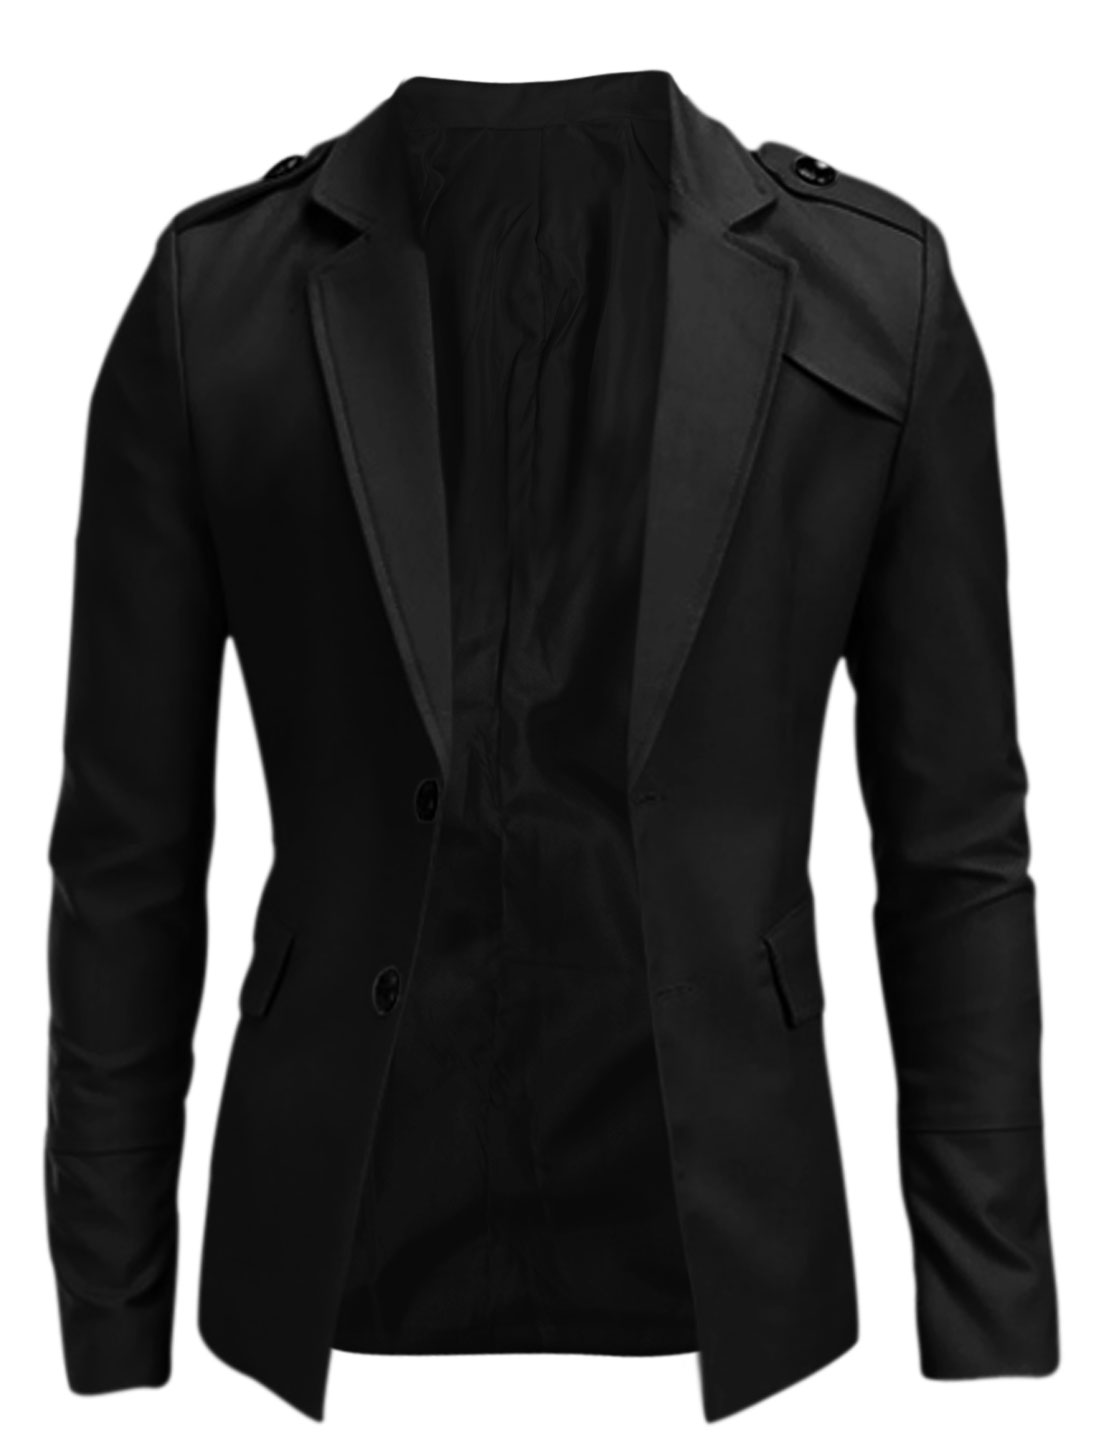 Man Button-tab Epaulets Two Pockets Long Sleeve Blazer Jacket Black M